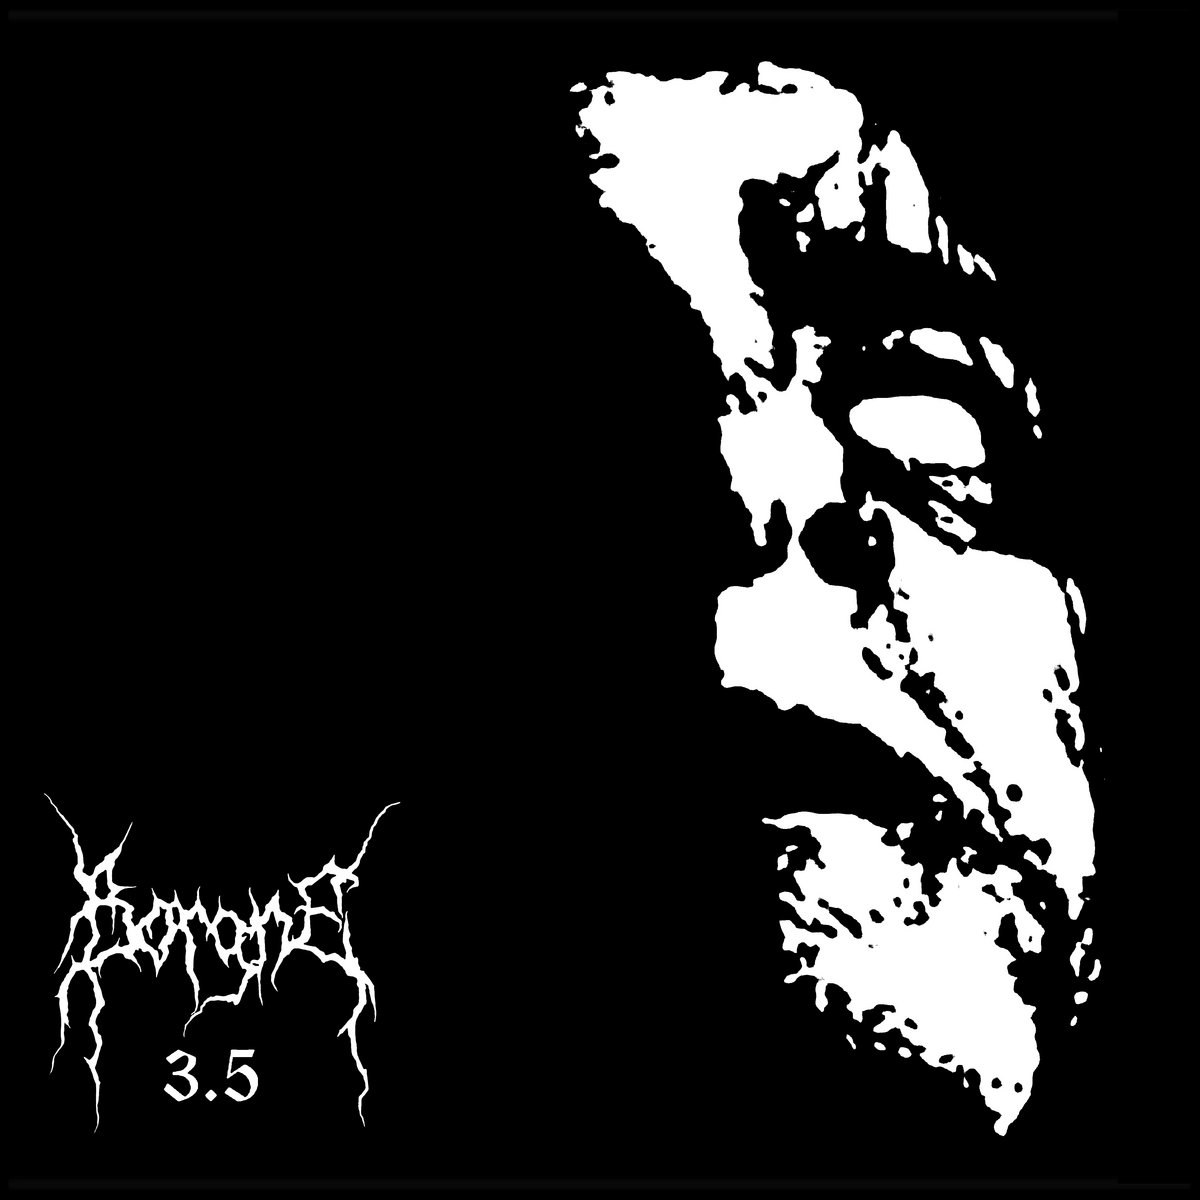 Review for Borgne - 3.5